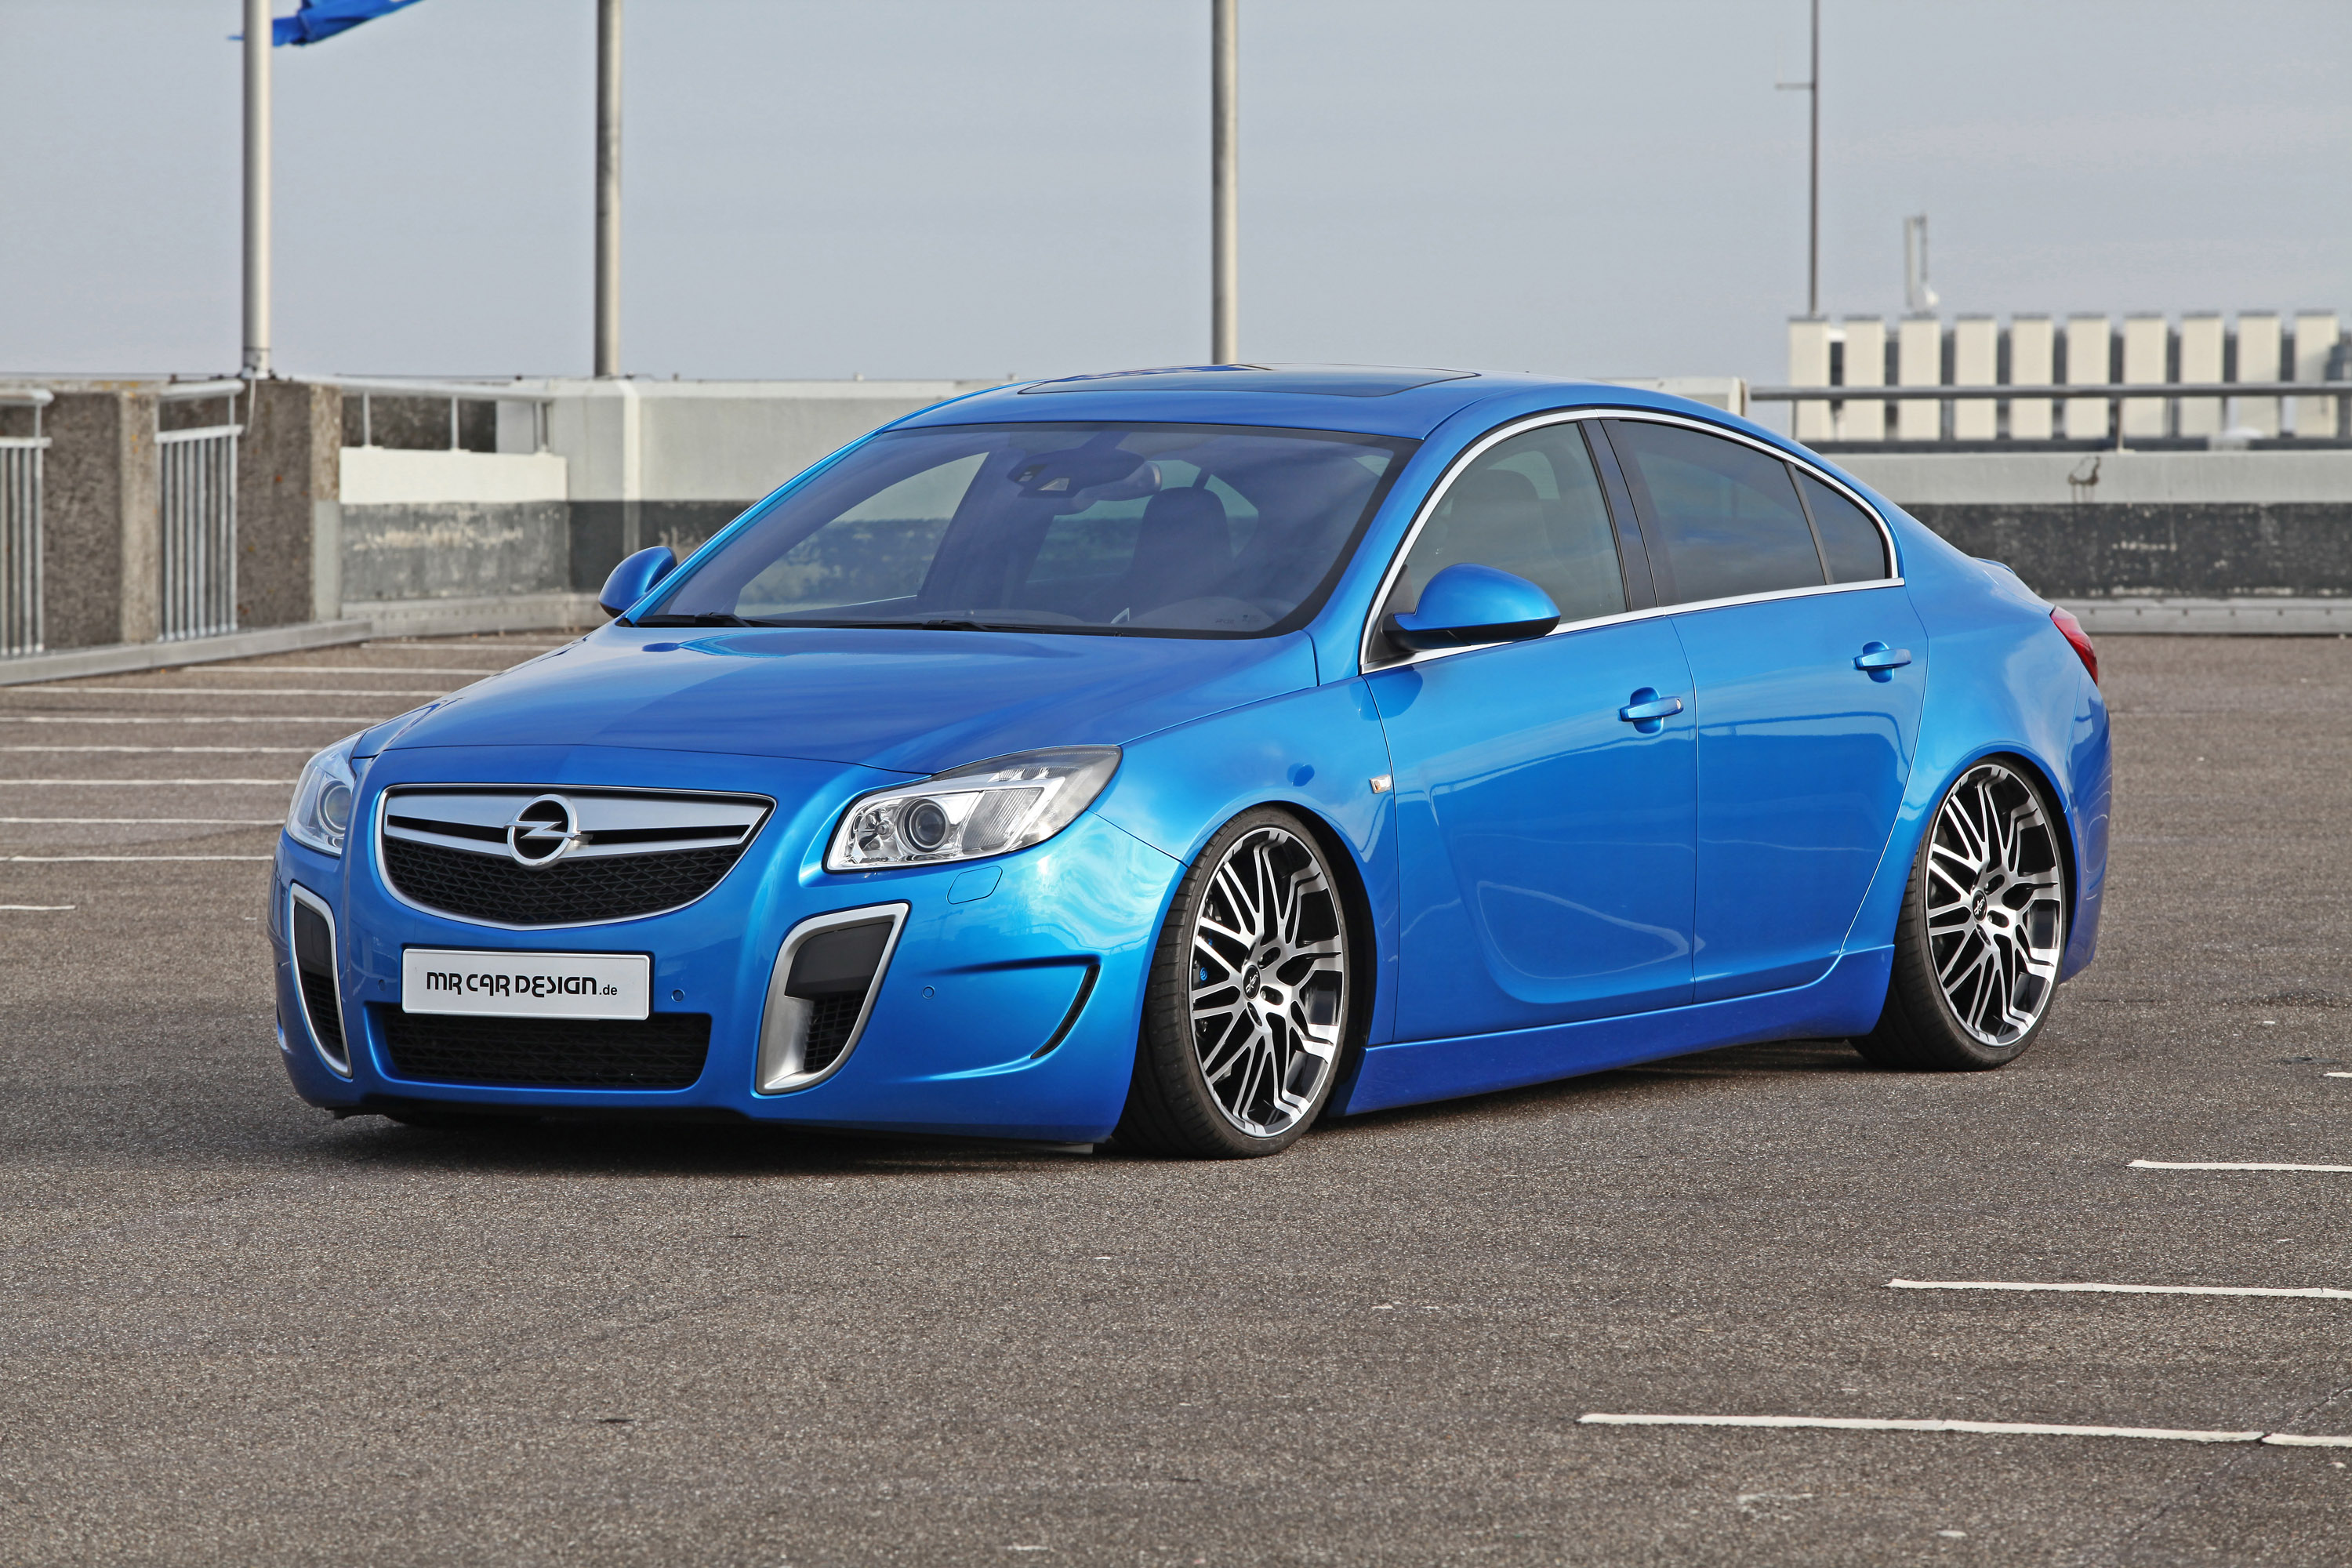 2012 mr car design opel insignia opc tuning wallpaper